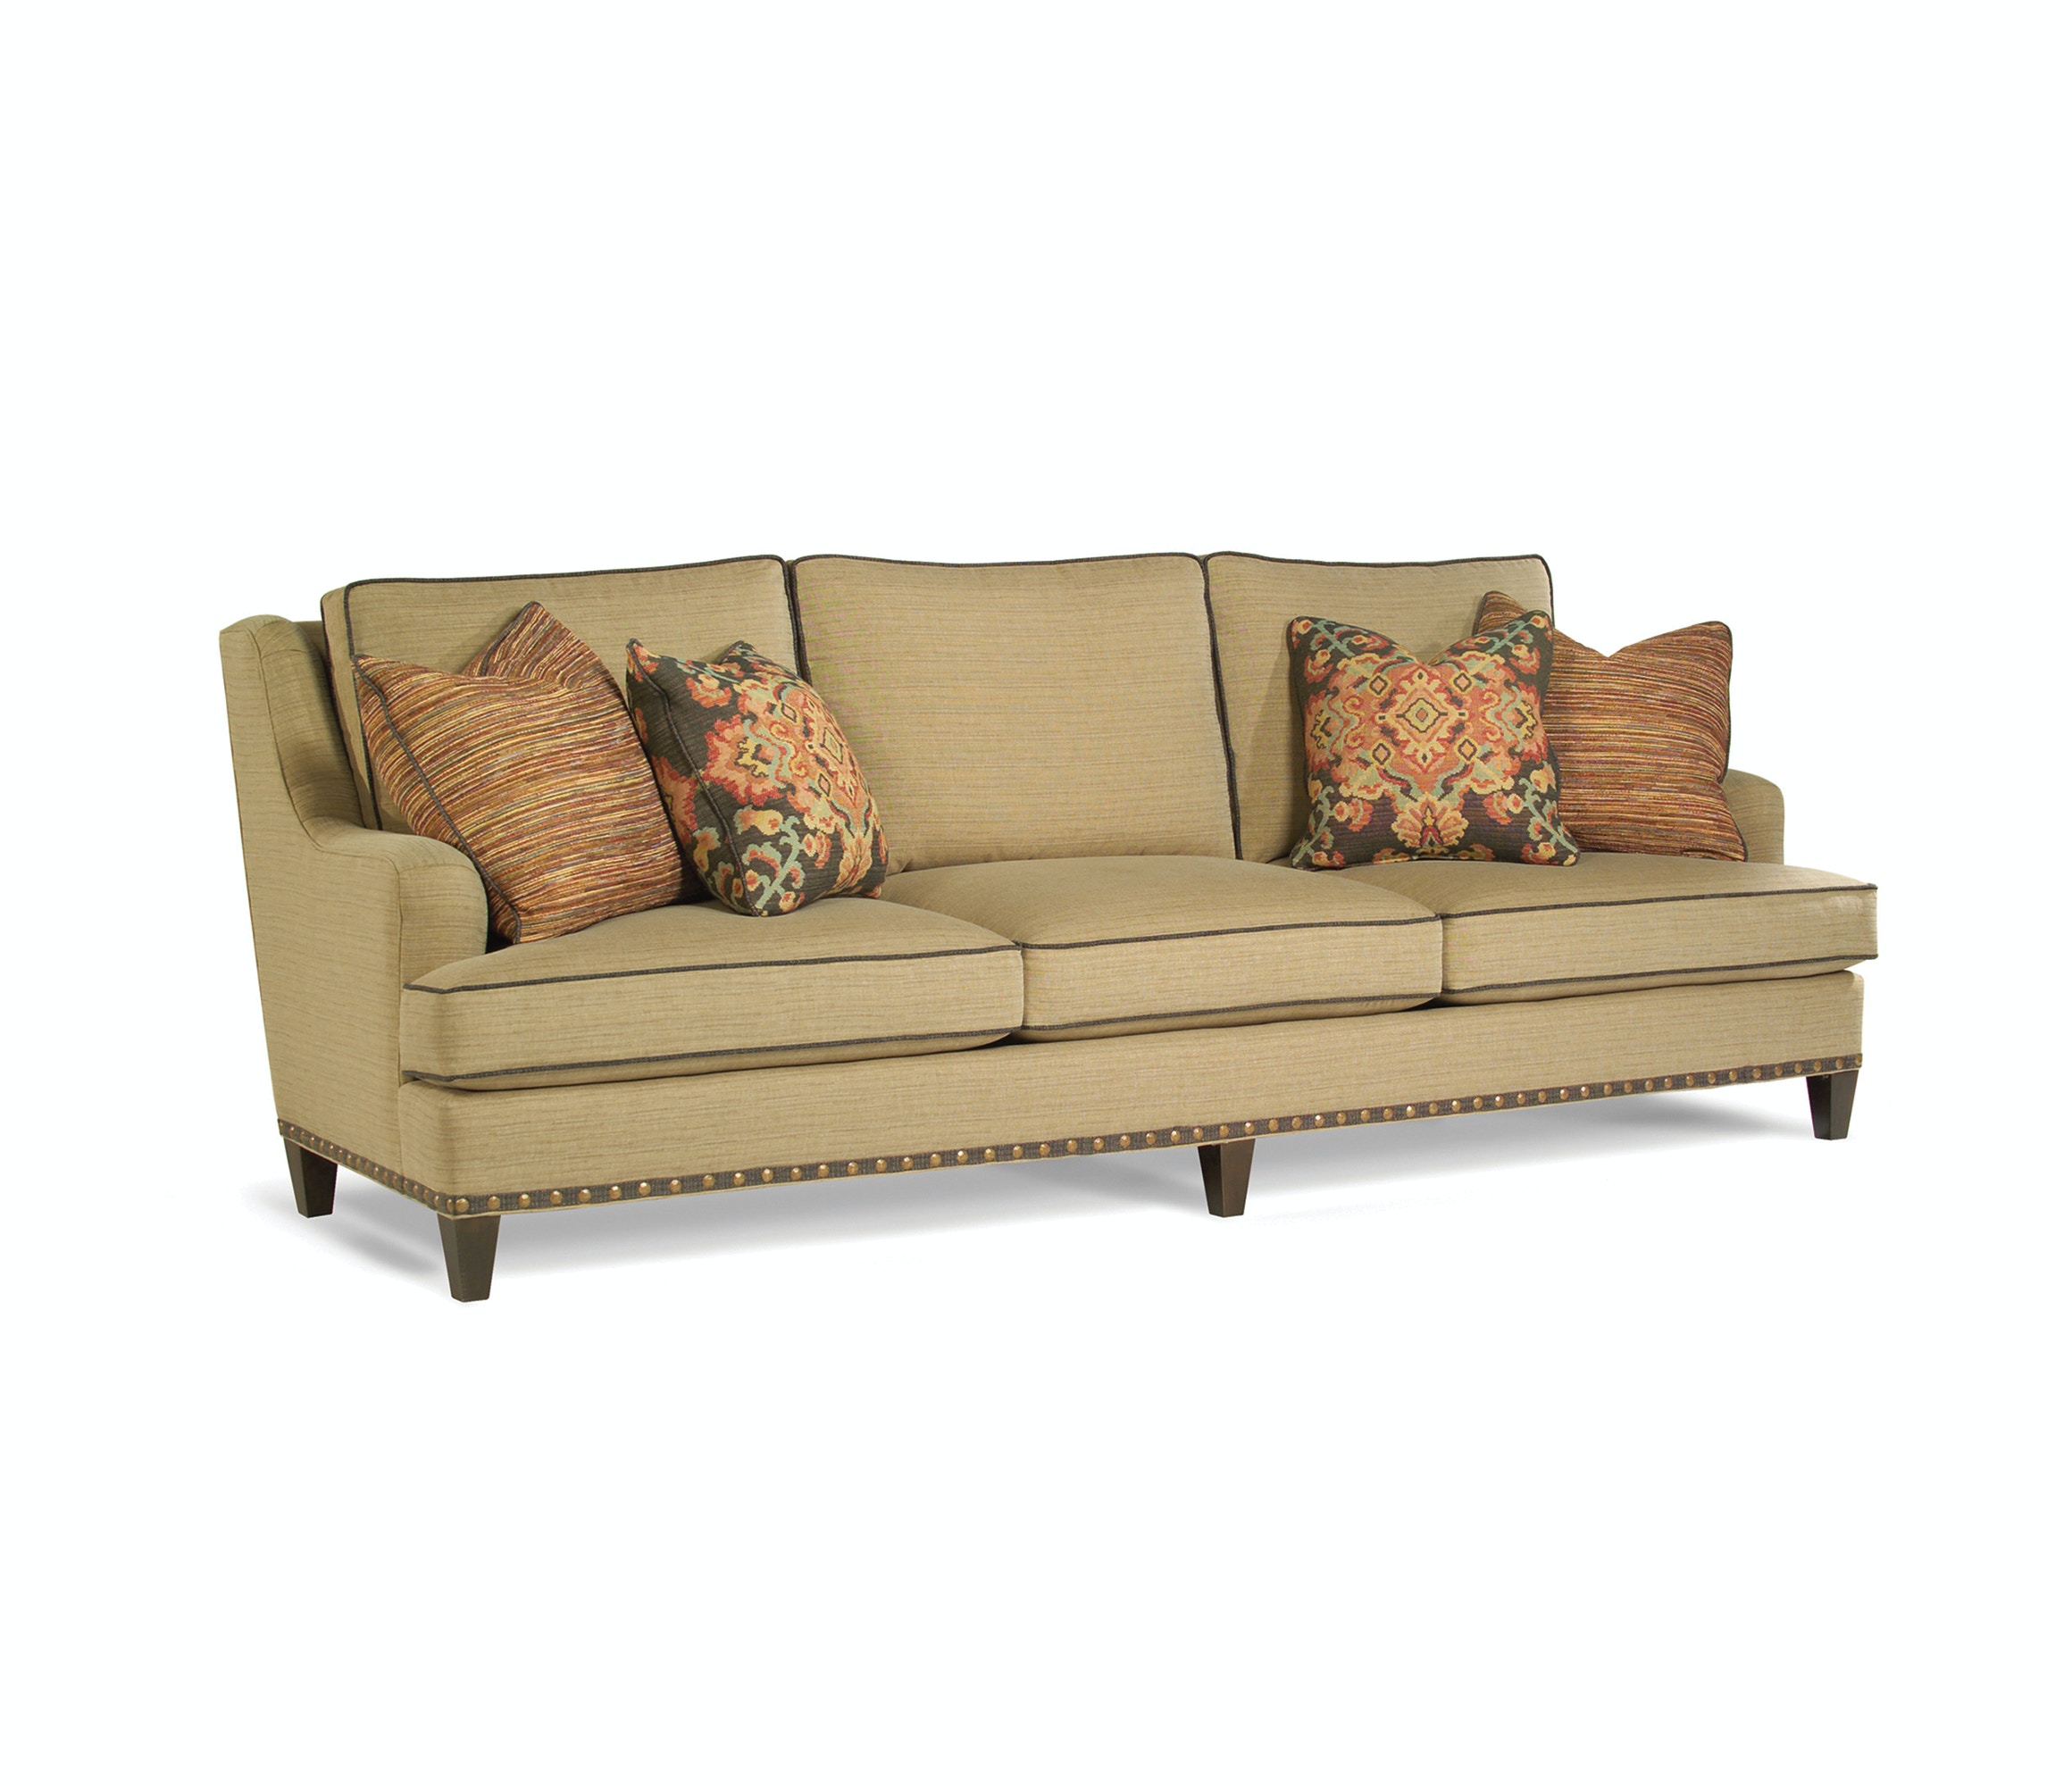 Taylor King Furniture Talulah Sofa 1037 03